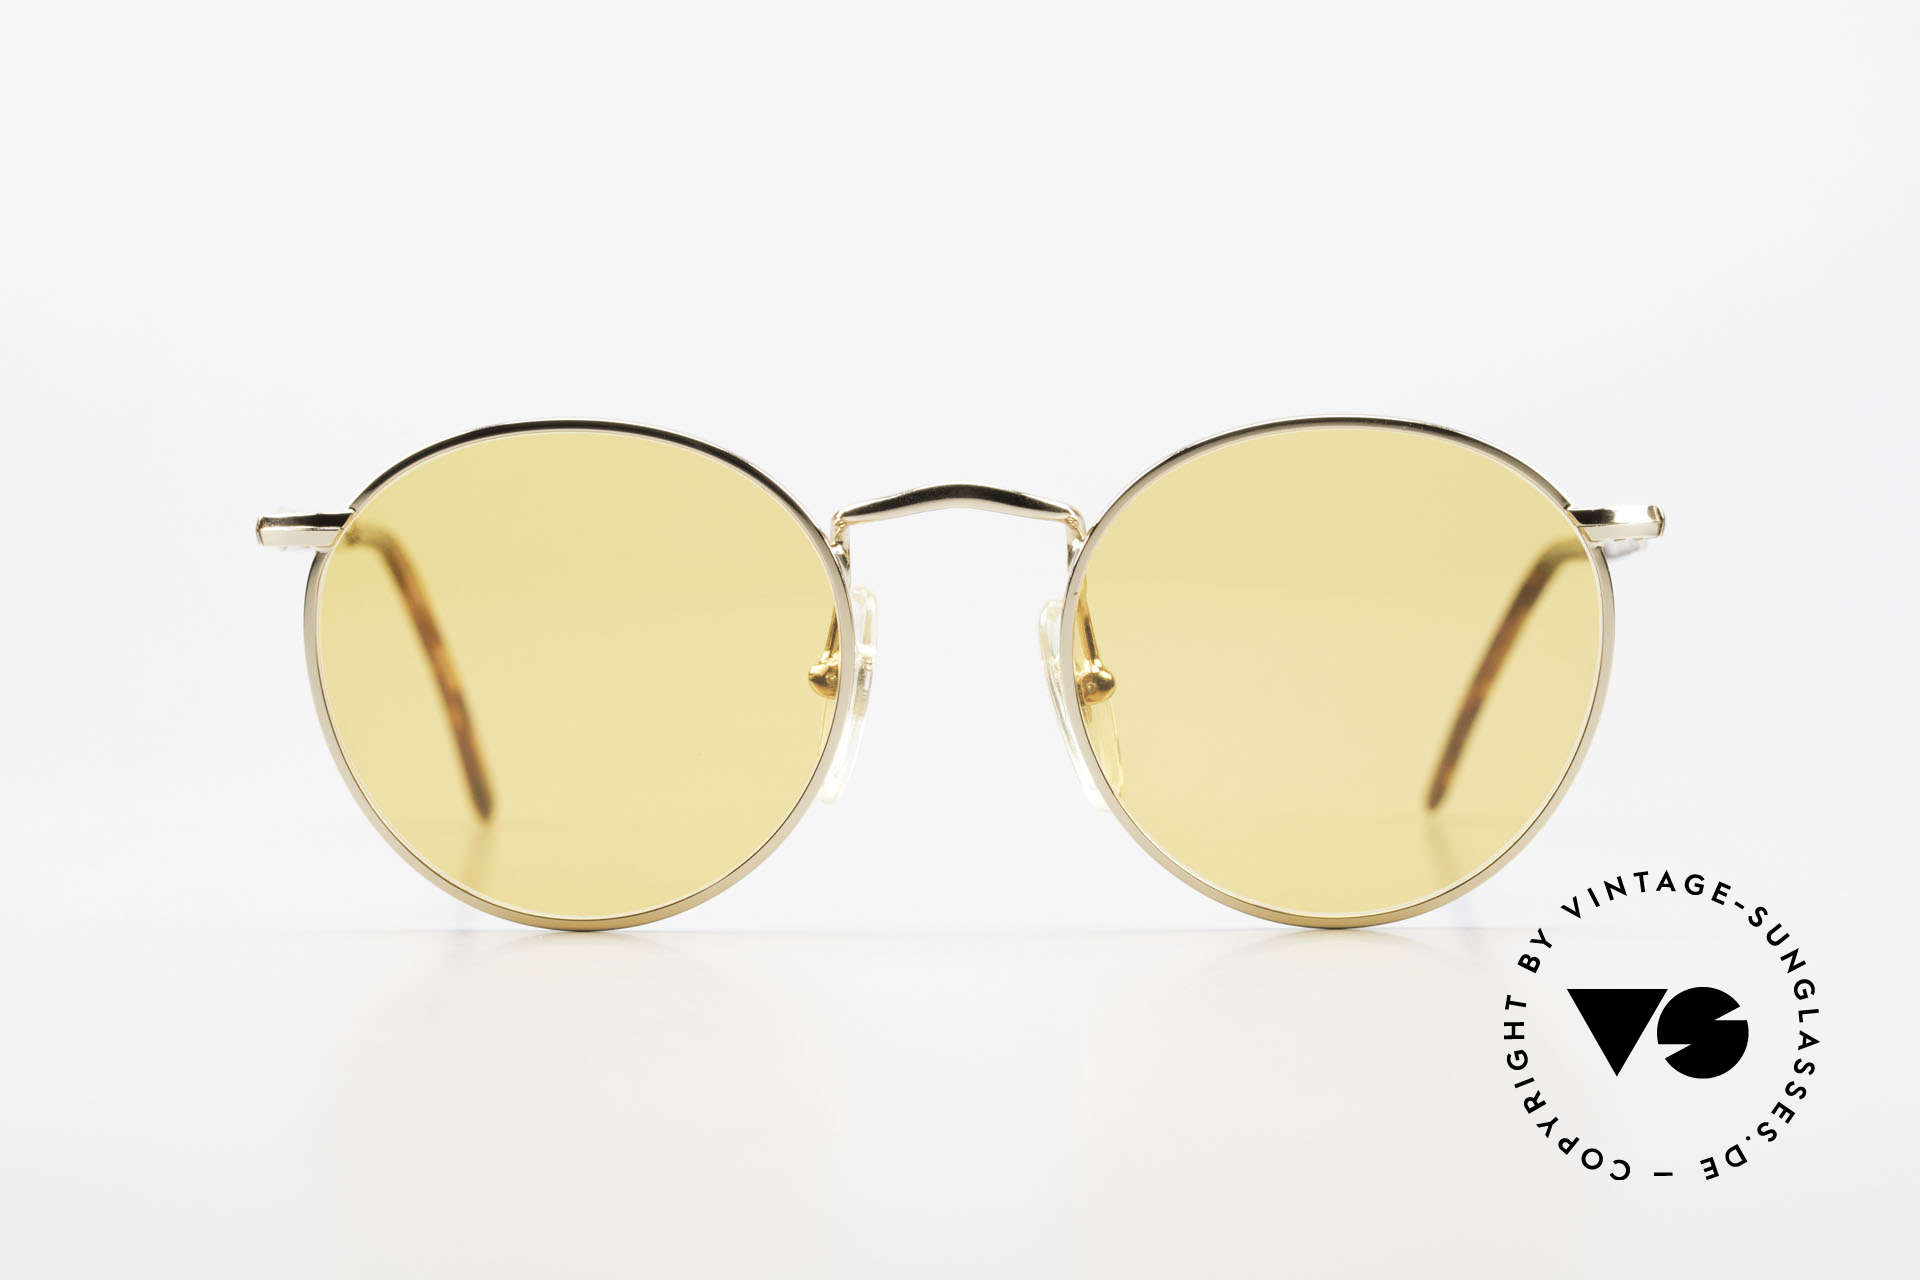 John Lennon - The Dreamer Extra Small Round Sunglasses, mod. 'The Dreamer': panto sunglasses in 47mm size (XS), Made for Men and Women